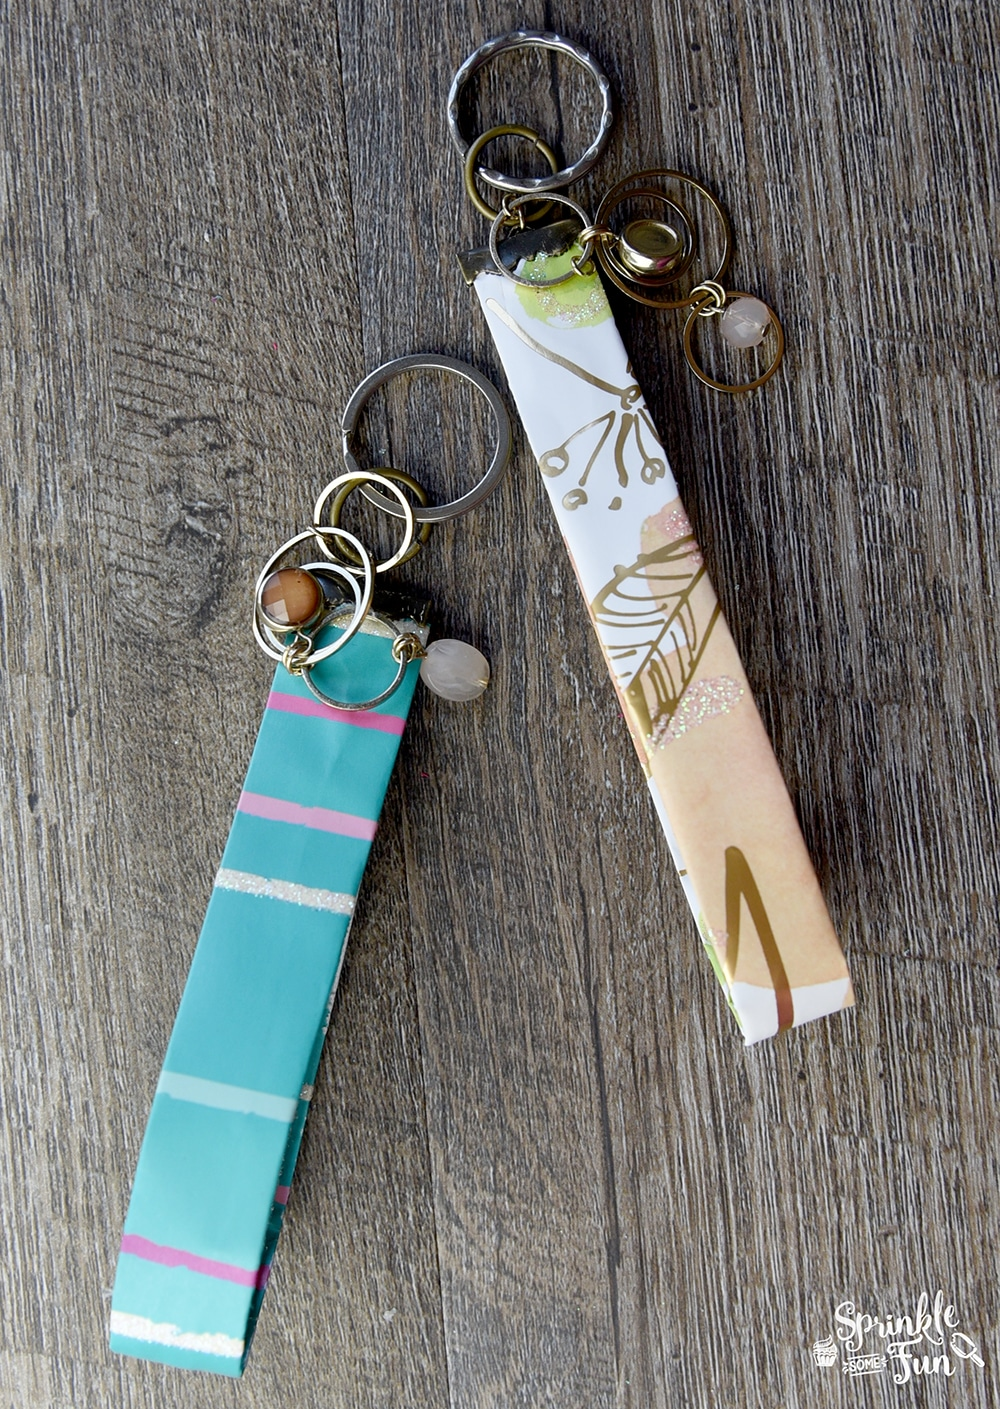 Key FOB from a gift bag!!!